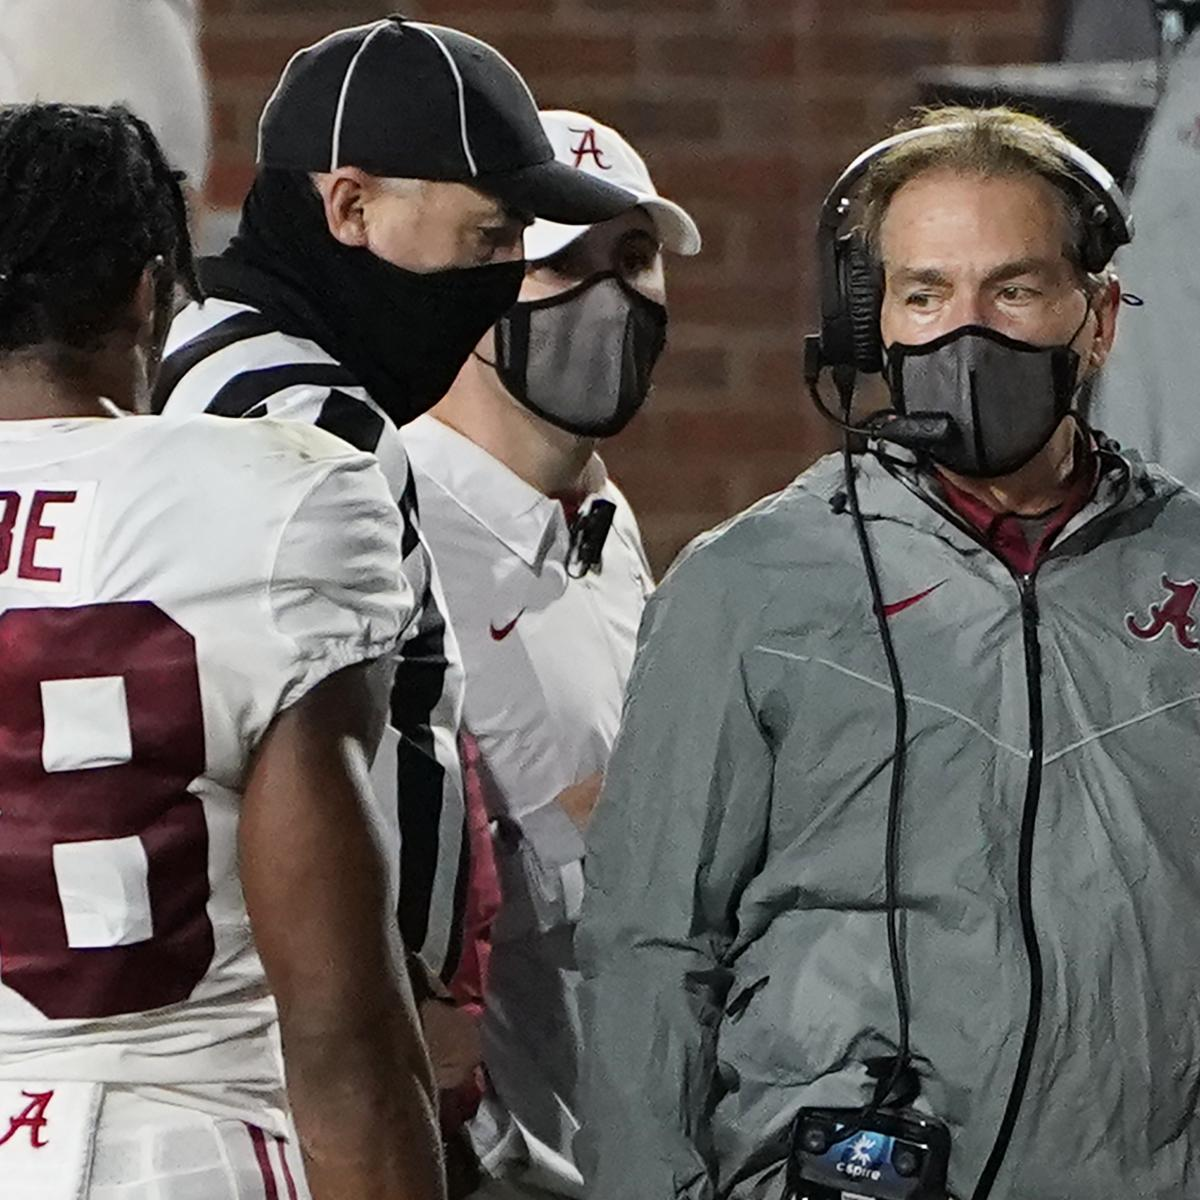 Nick Saban Expects to Be on Sideline for Alabama vs. LSU After COVID-19 Absence